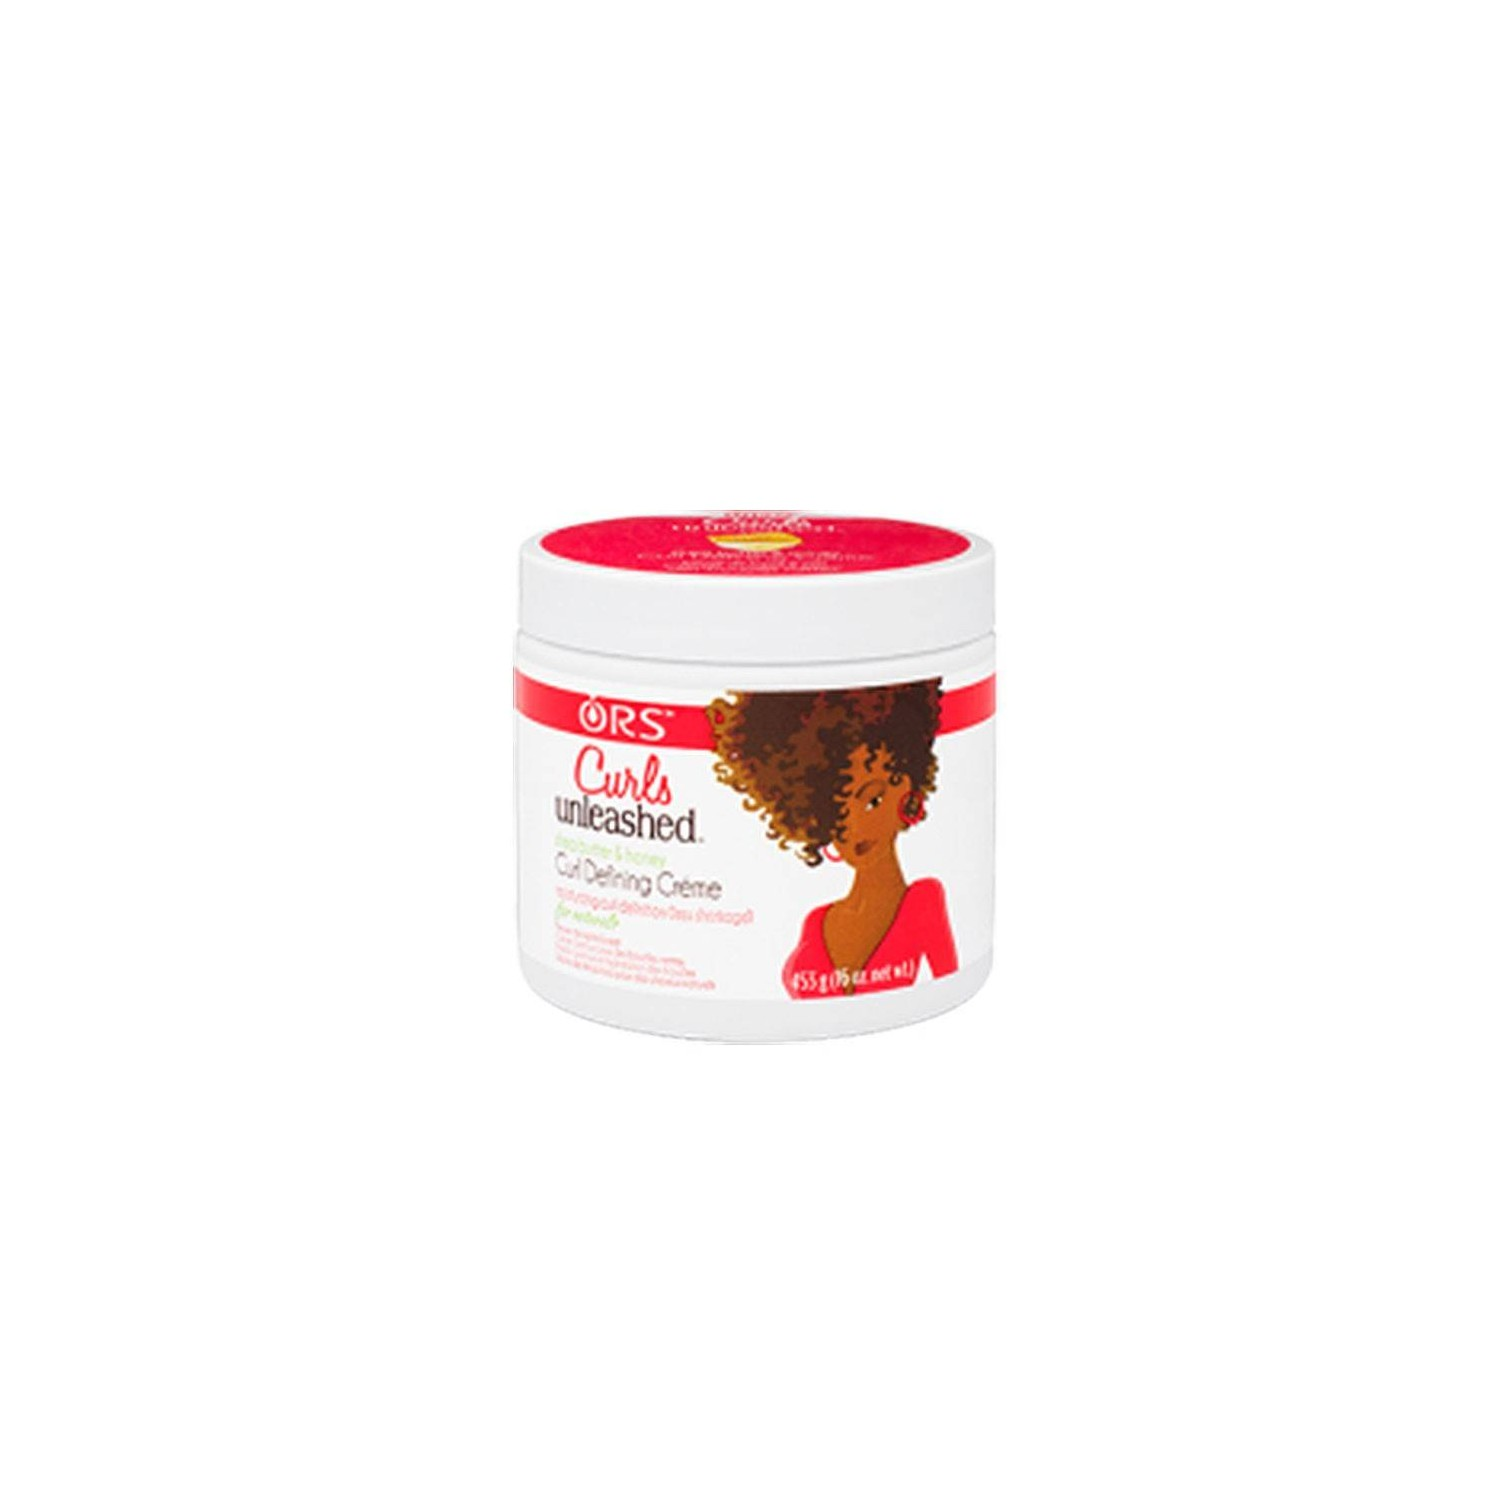 Ors Curls Unleashed Defining Crème 453 Gr